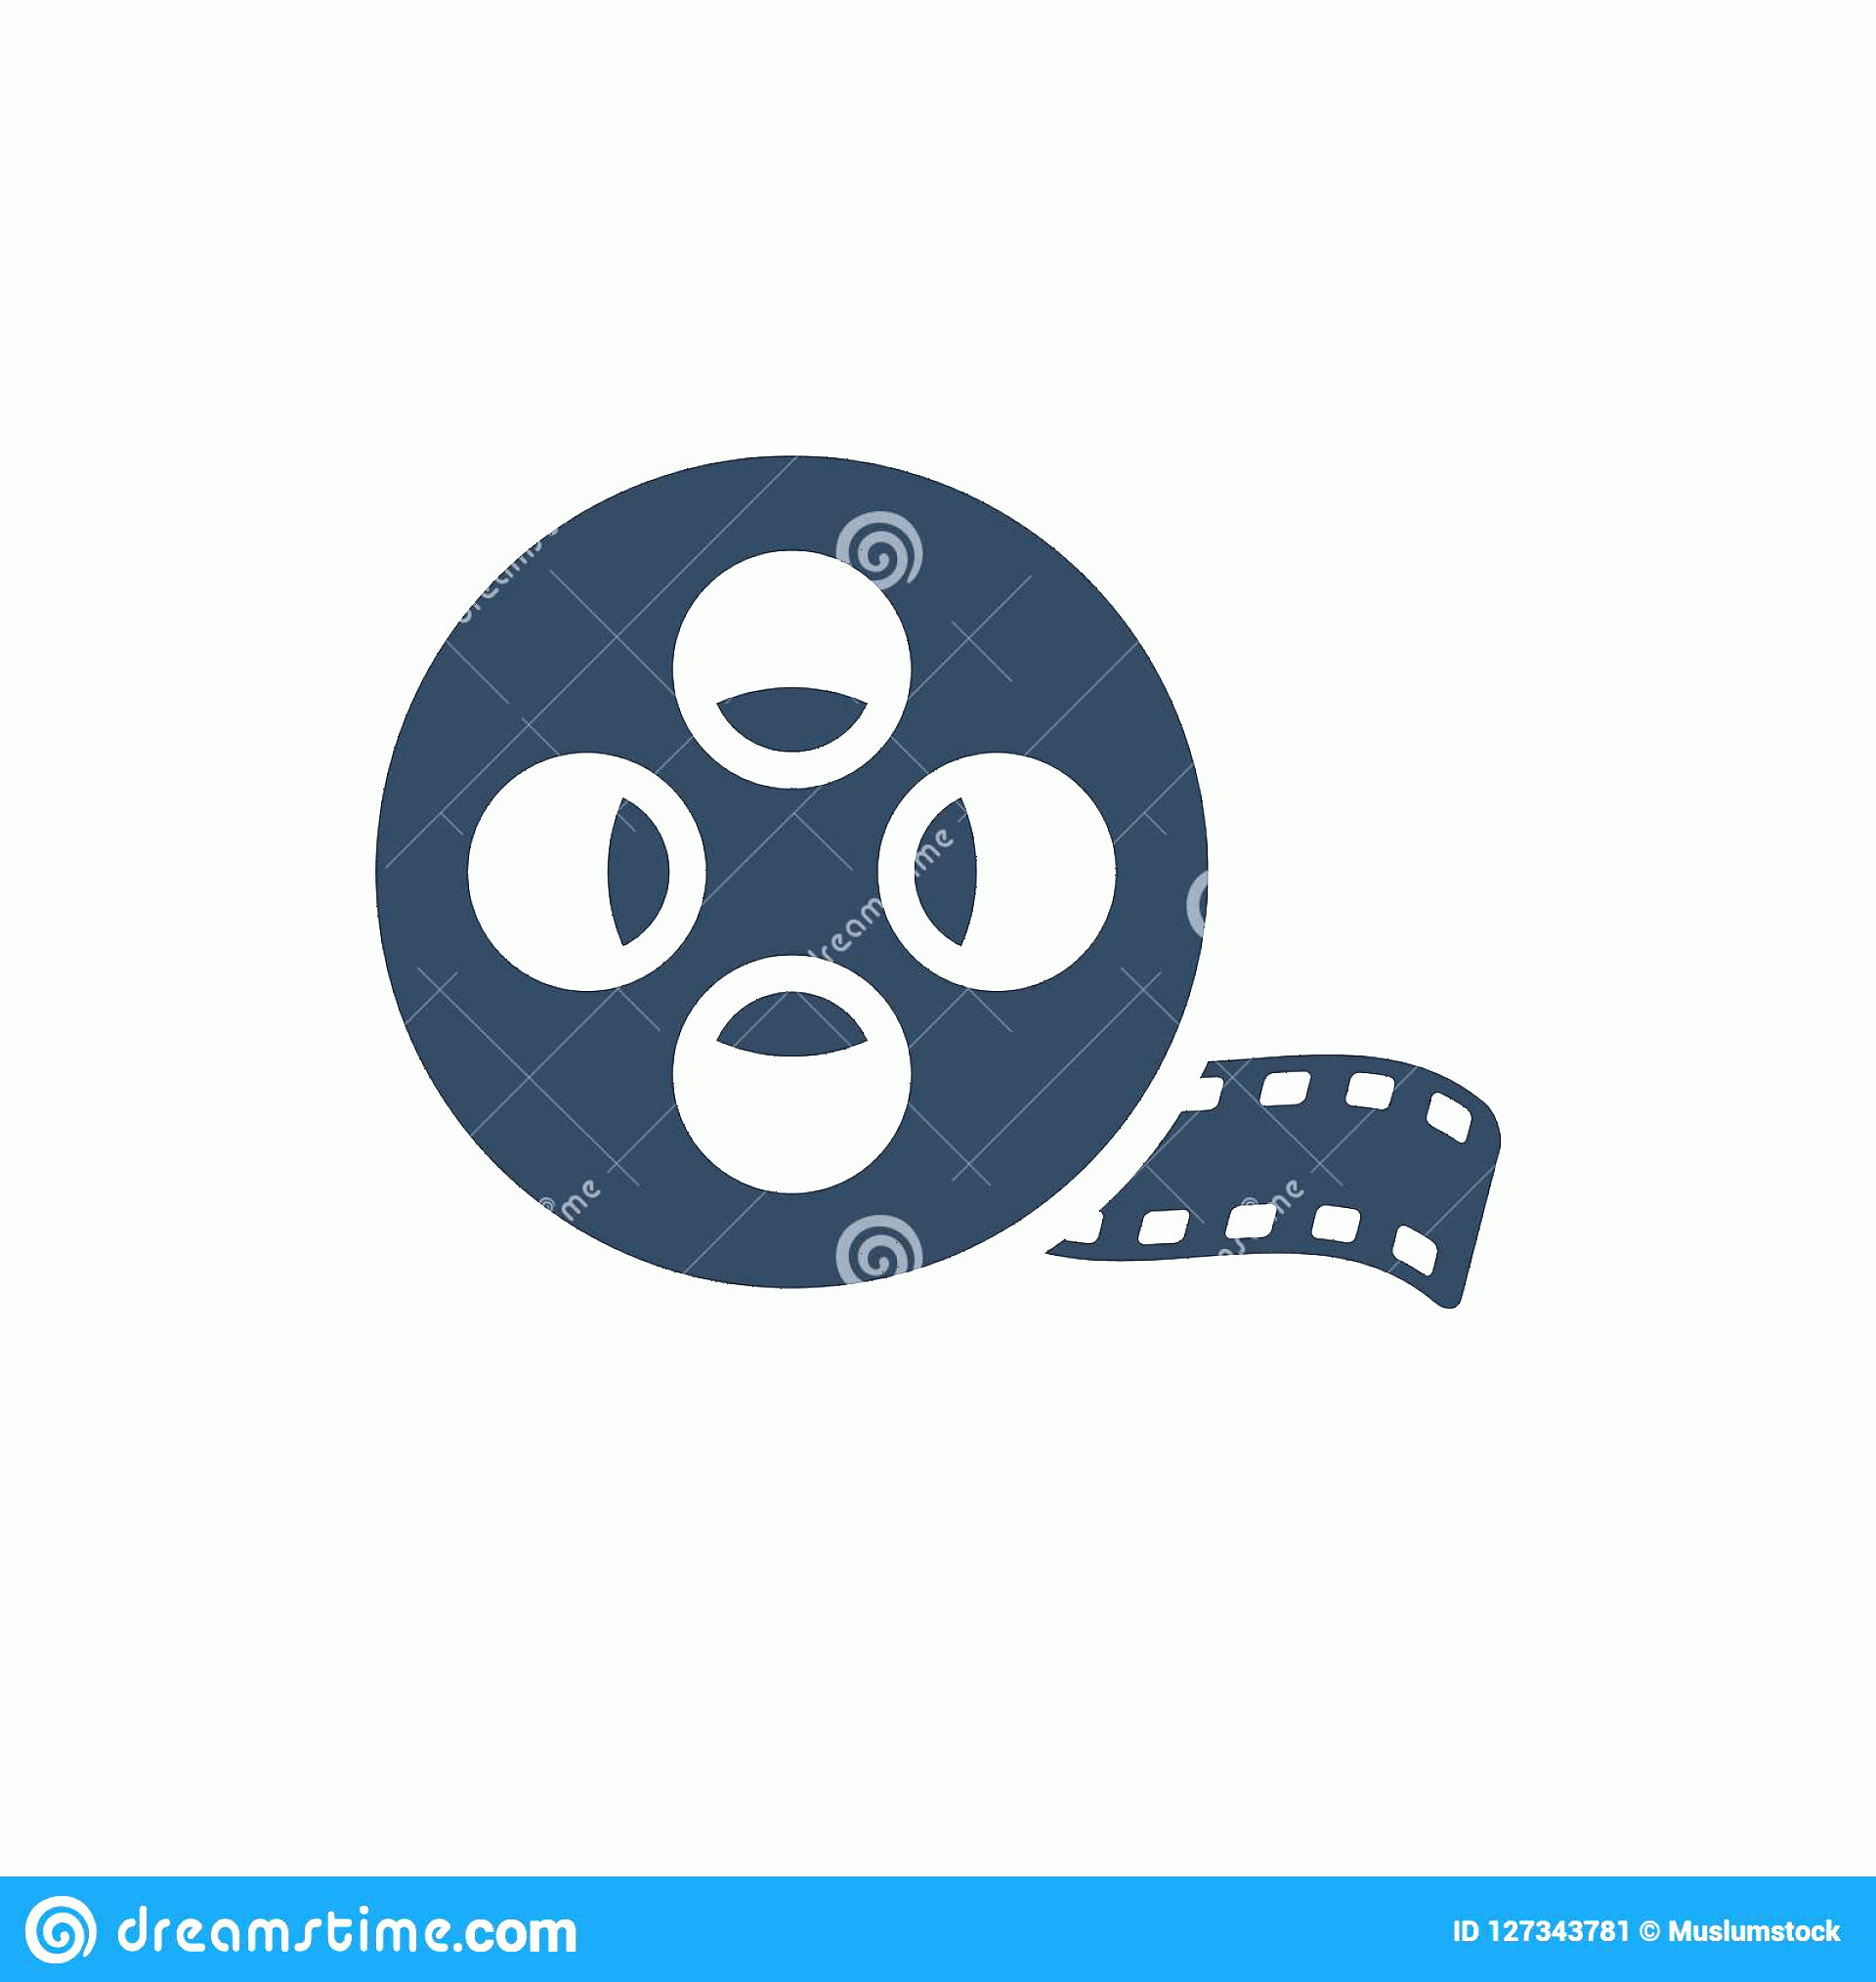 R Transparent Background Vector: Film Reel Vector Icon Isolated Transparent Background R Transparency Concept Can Be Used Web Mobile Image